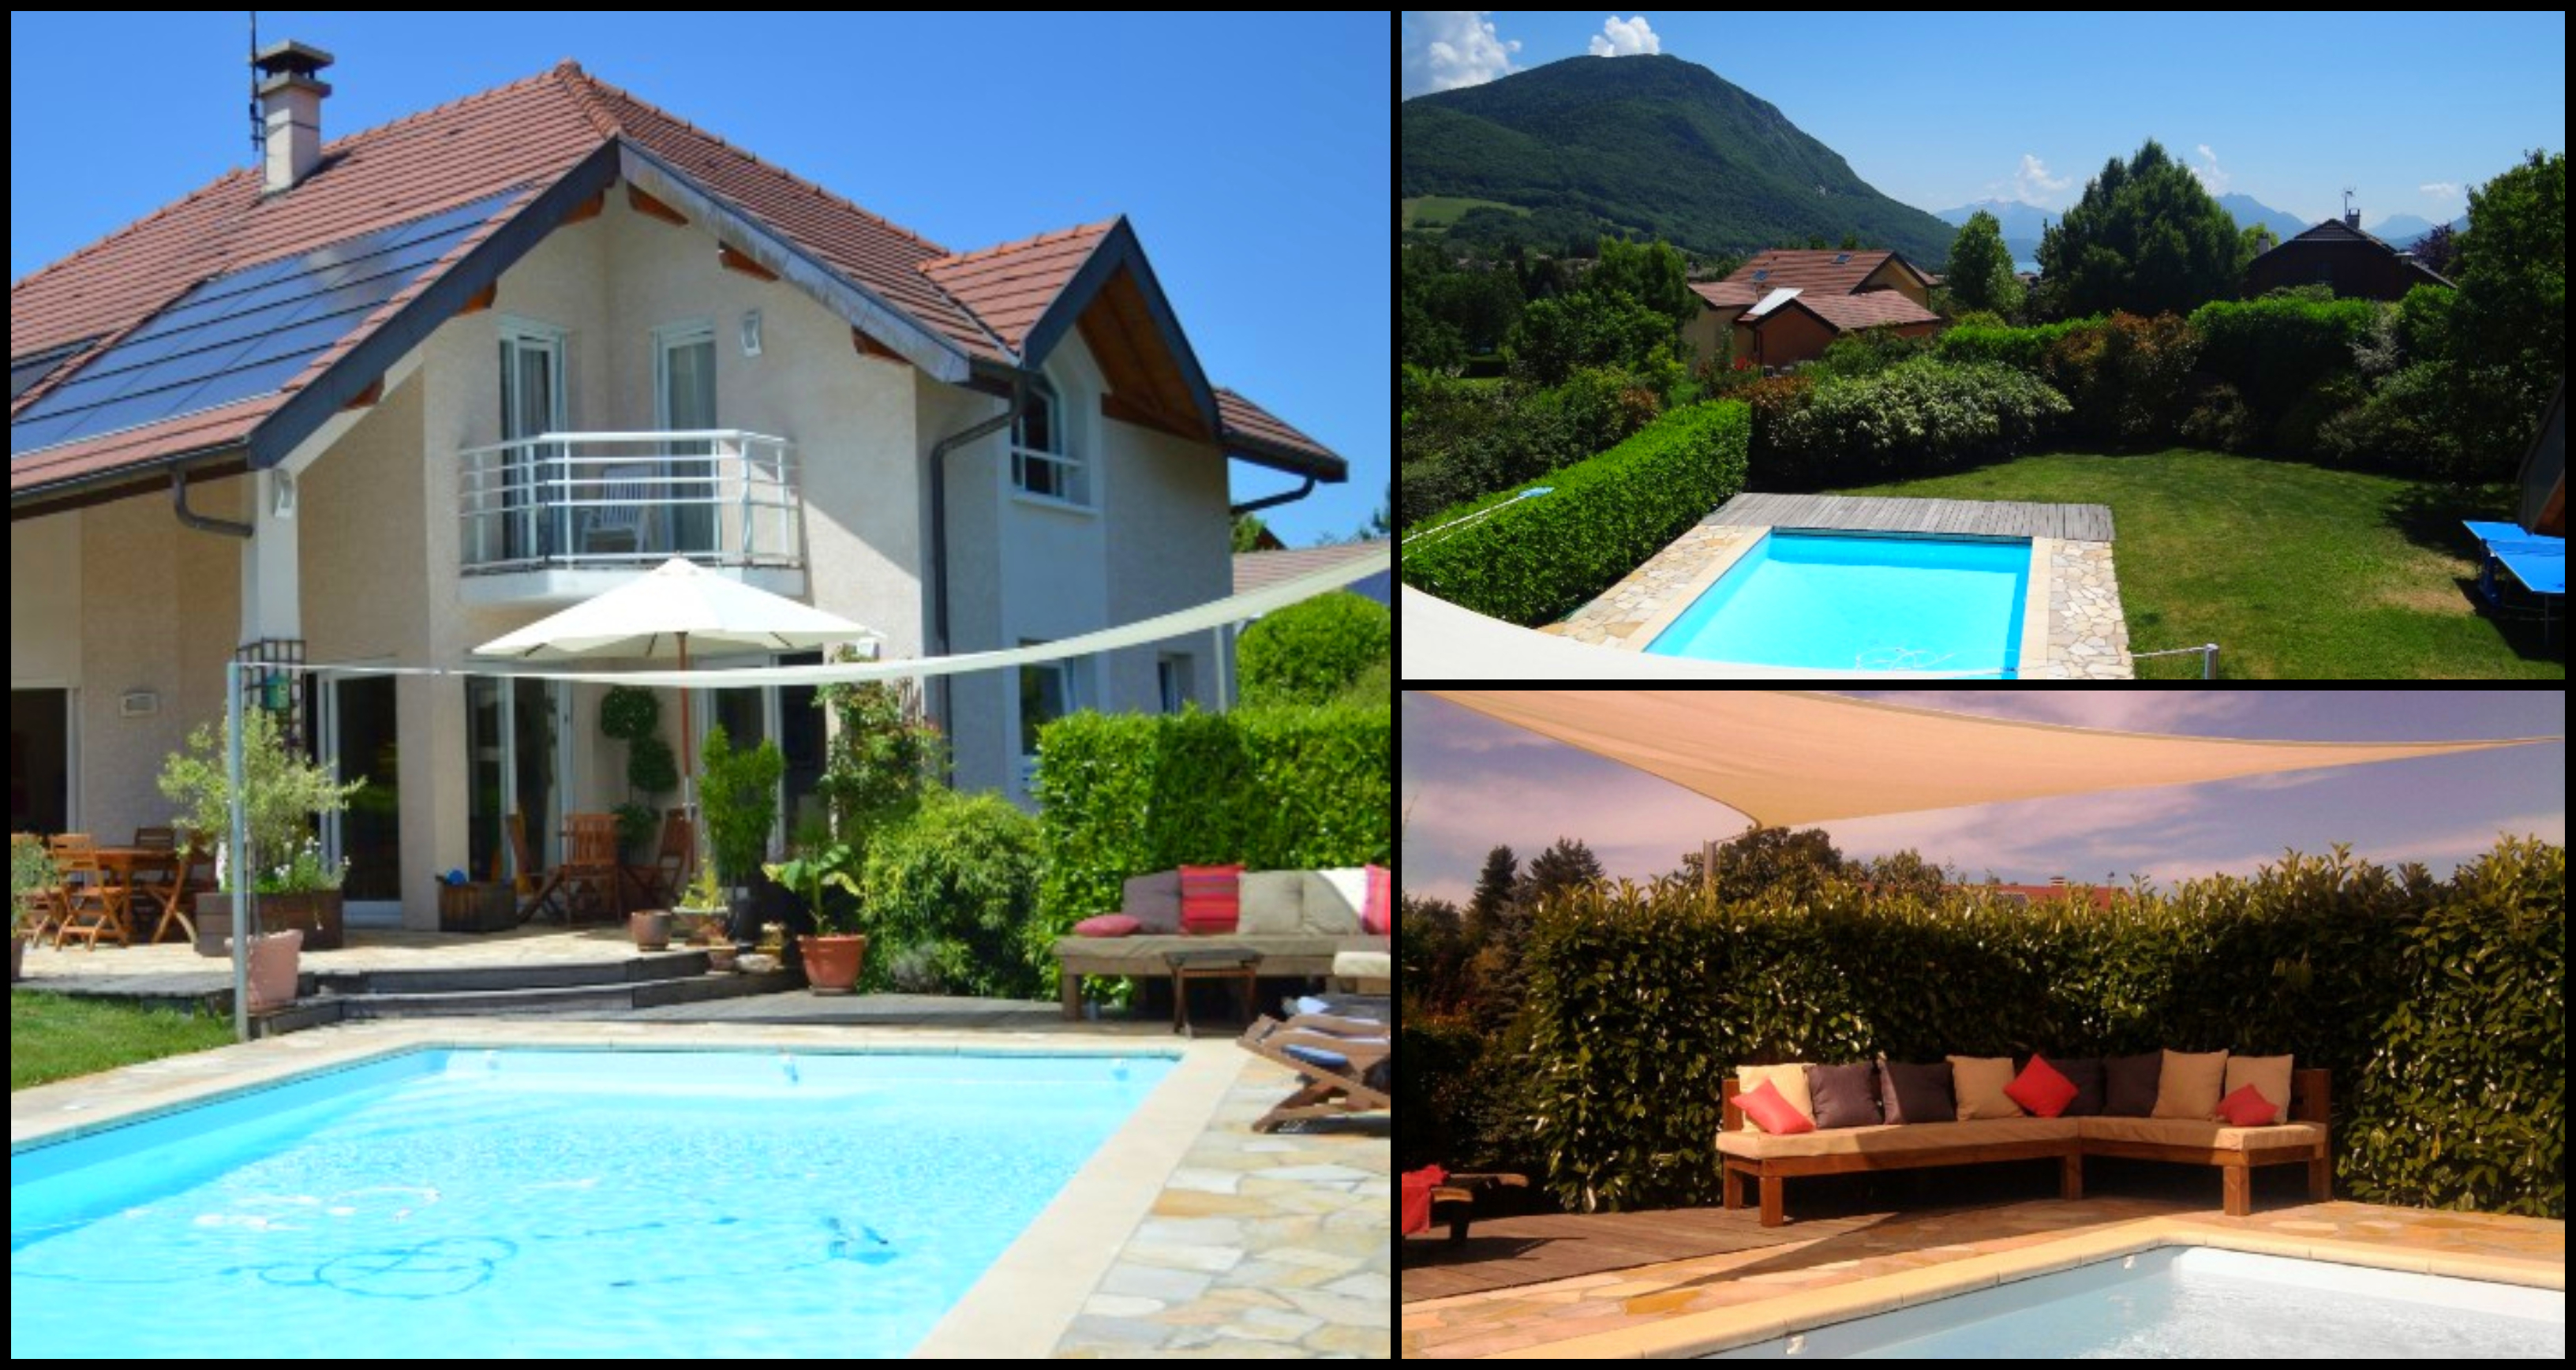 Villas with pools in annecy lake annecy for Lake annecy hotels swimming pool